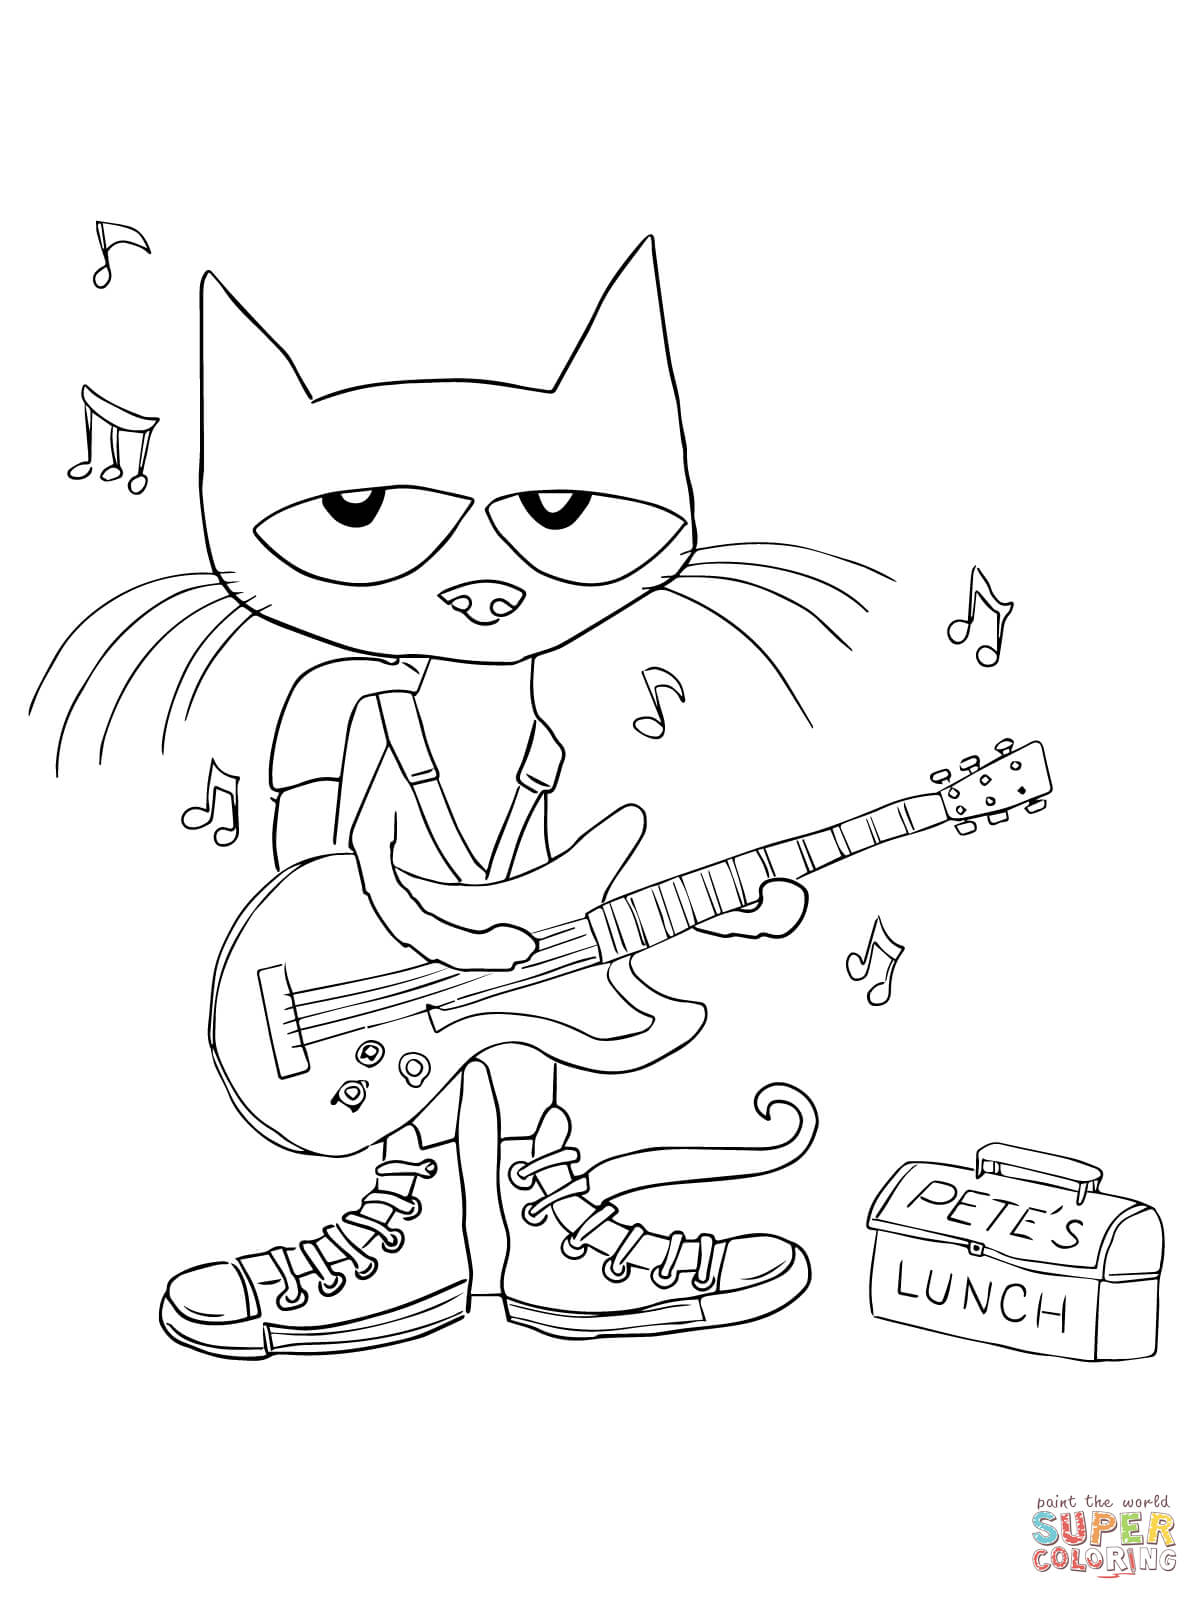 Pete the Cat coloring page | Free Printable Coloring Pages